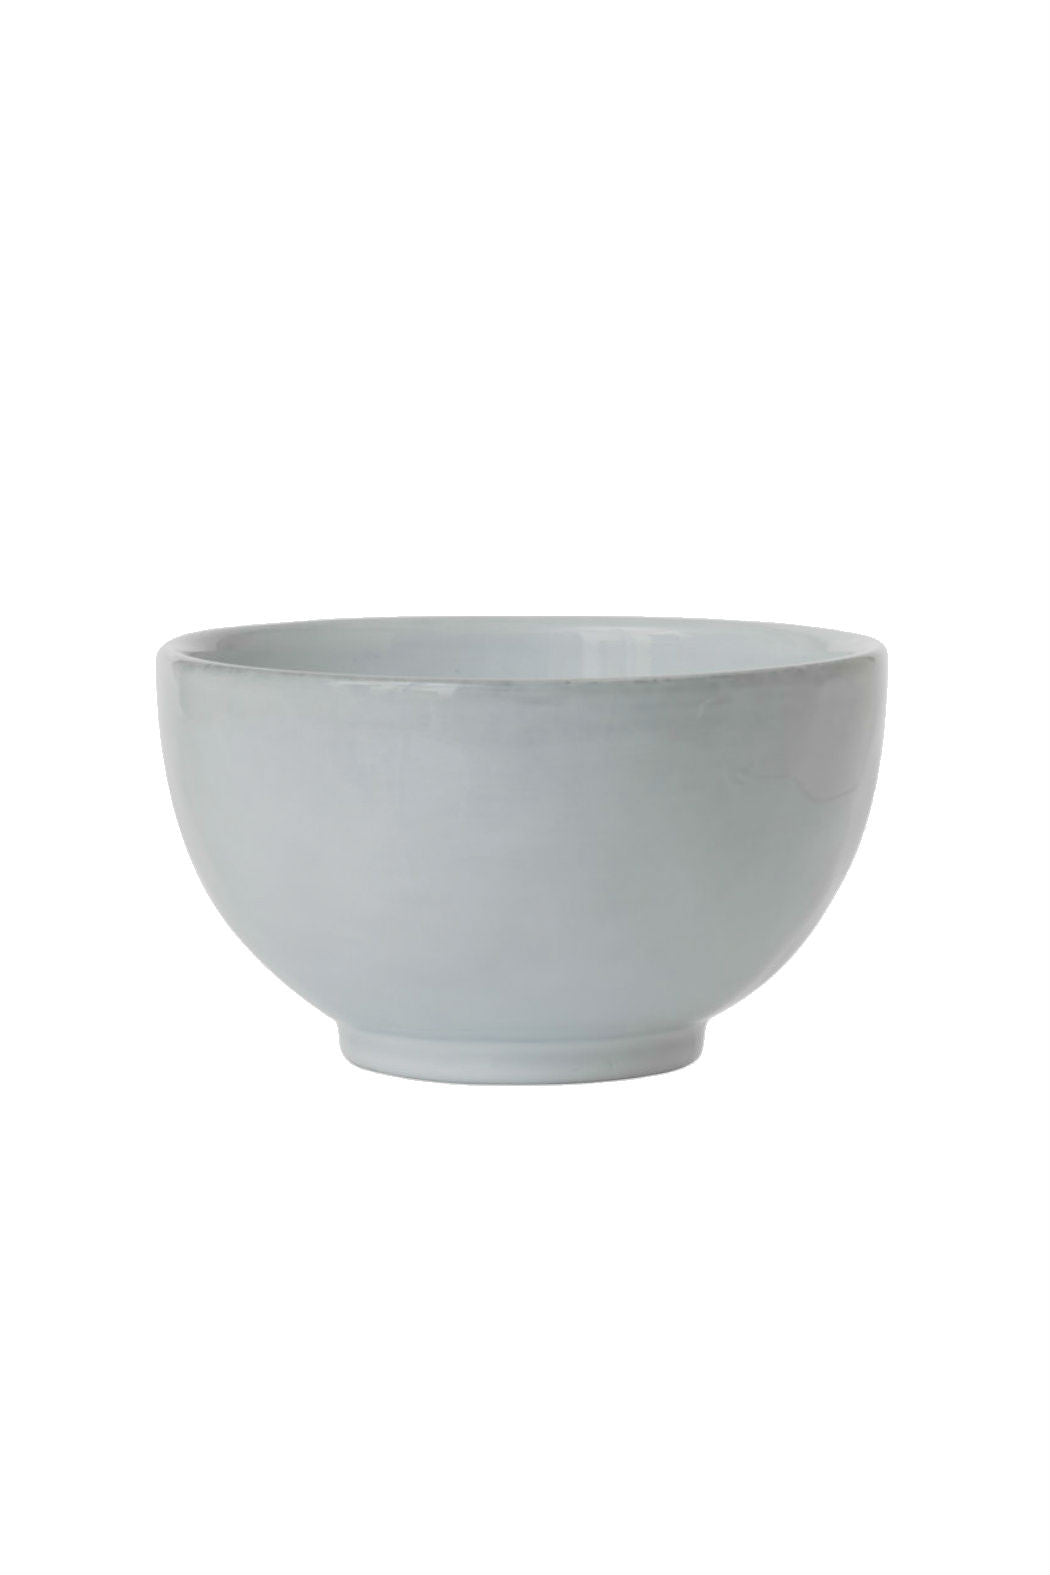 Juliska Quotidien White Truffle Cereal Bowl - New Orientation